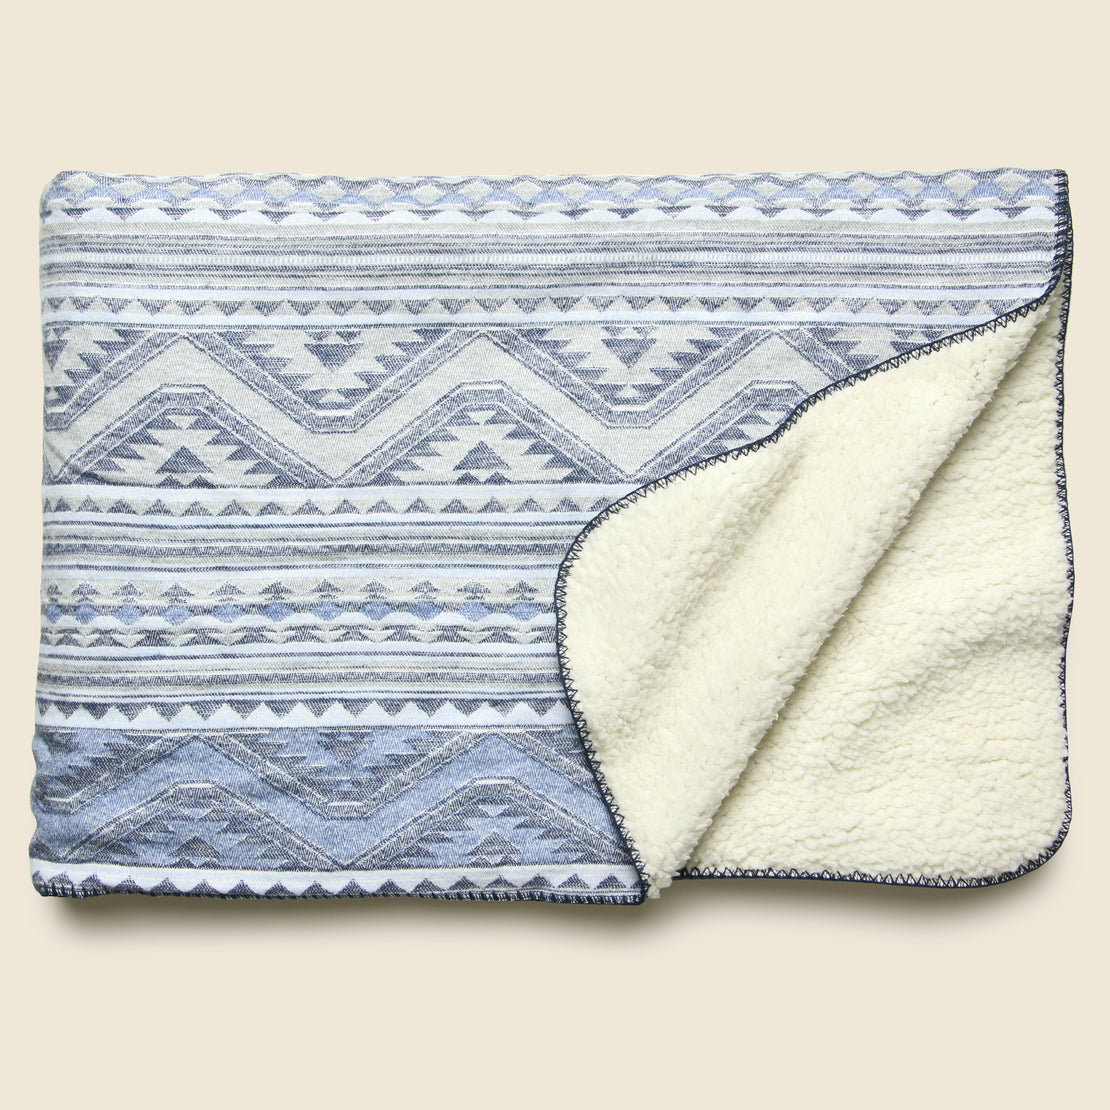 Faherty Aspen Sherpa Blanket - Twilight Glacier